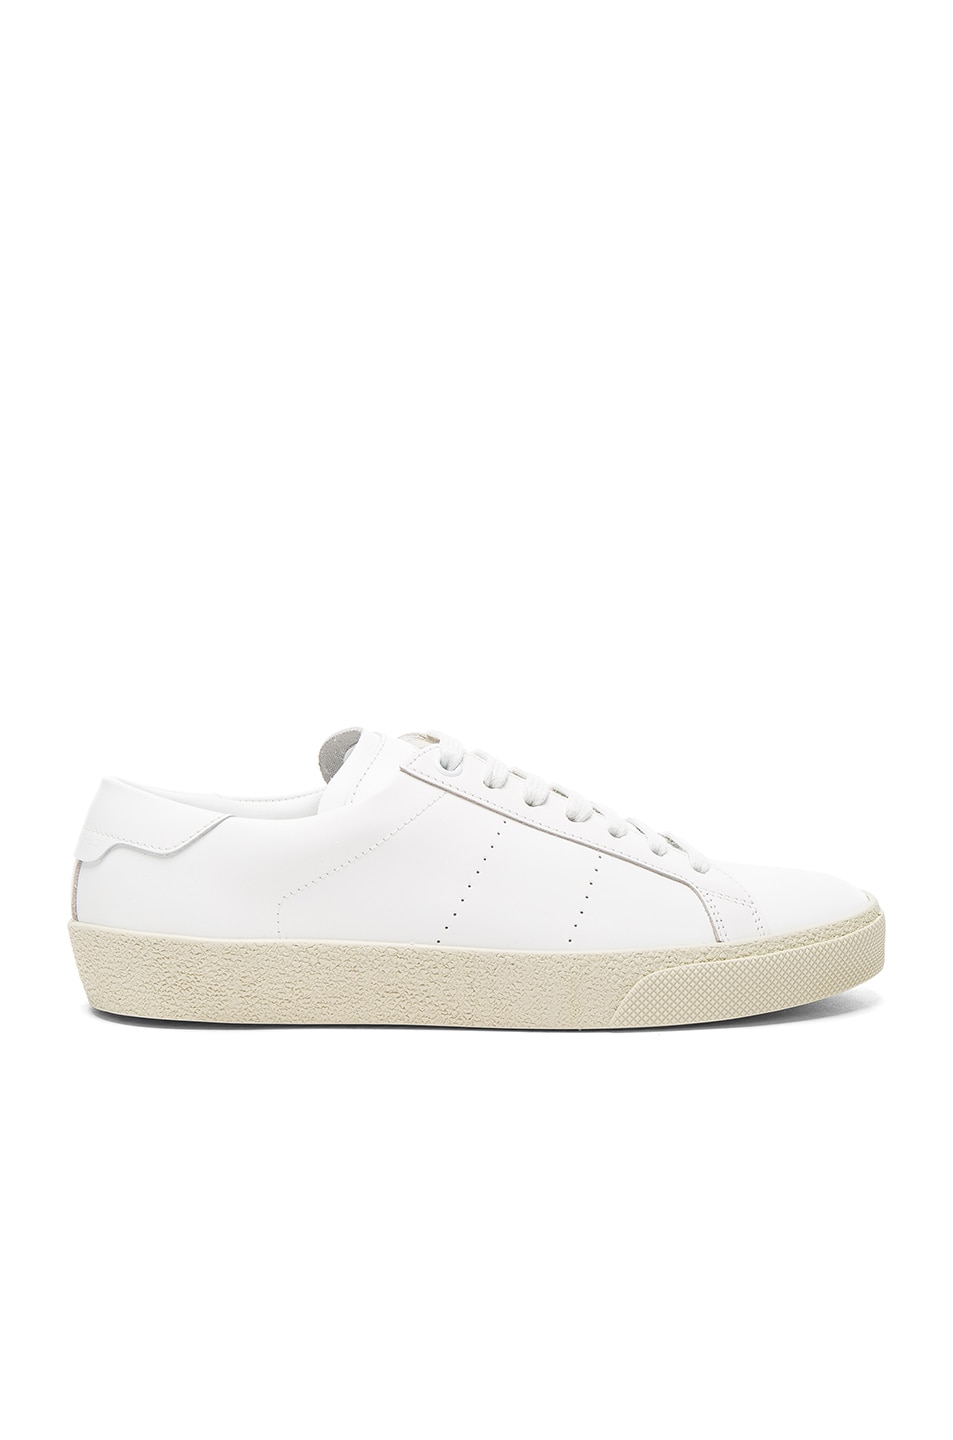 Image 1 of Saint Laurent Court Classic Leather Sneakers in Optic White